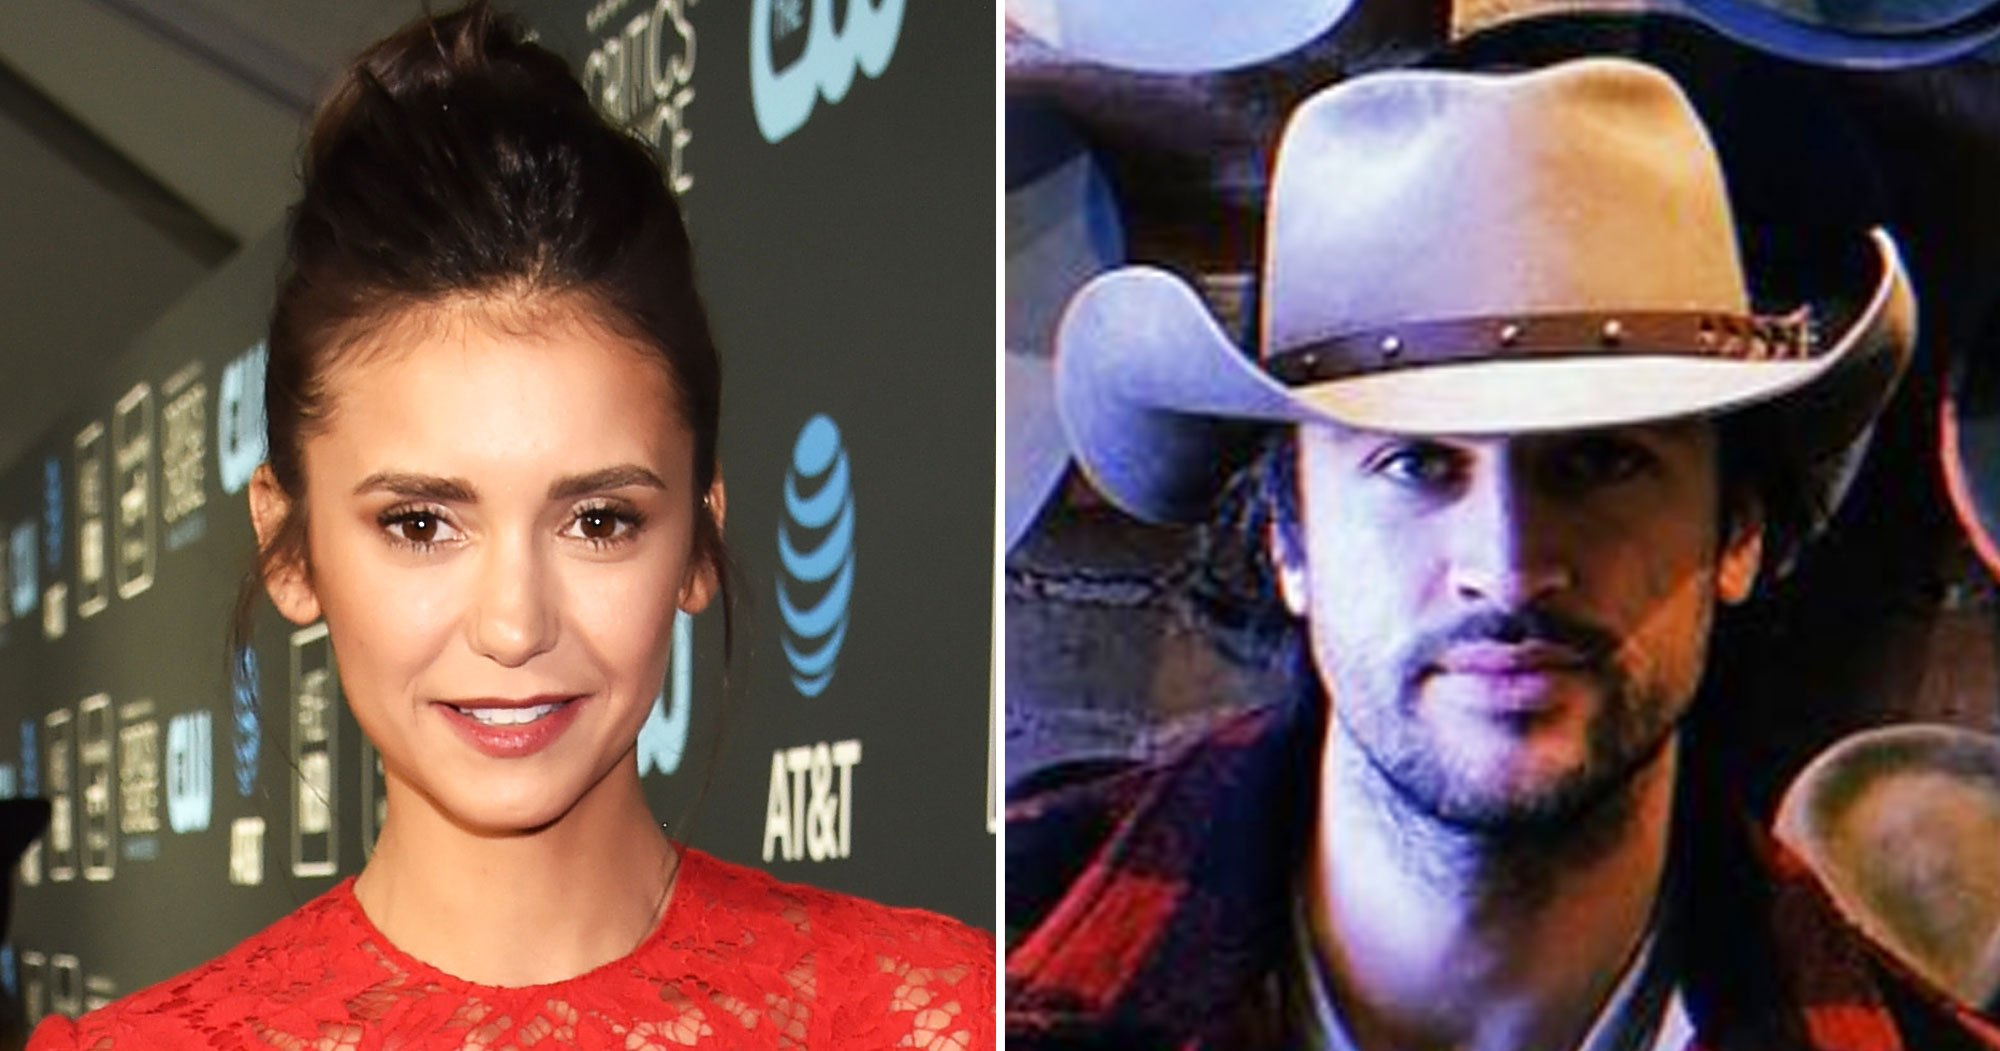 Nina Dobrev Spotted Kissing Grant Mellon at Super Bowl Parties More Than a Year After Glen Powell Split